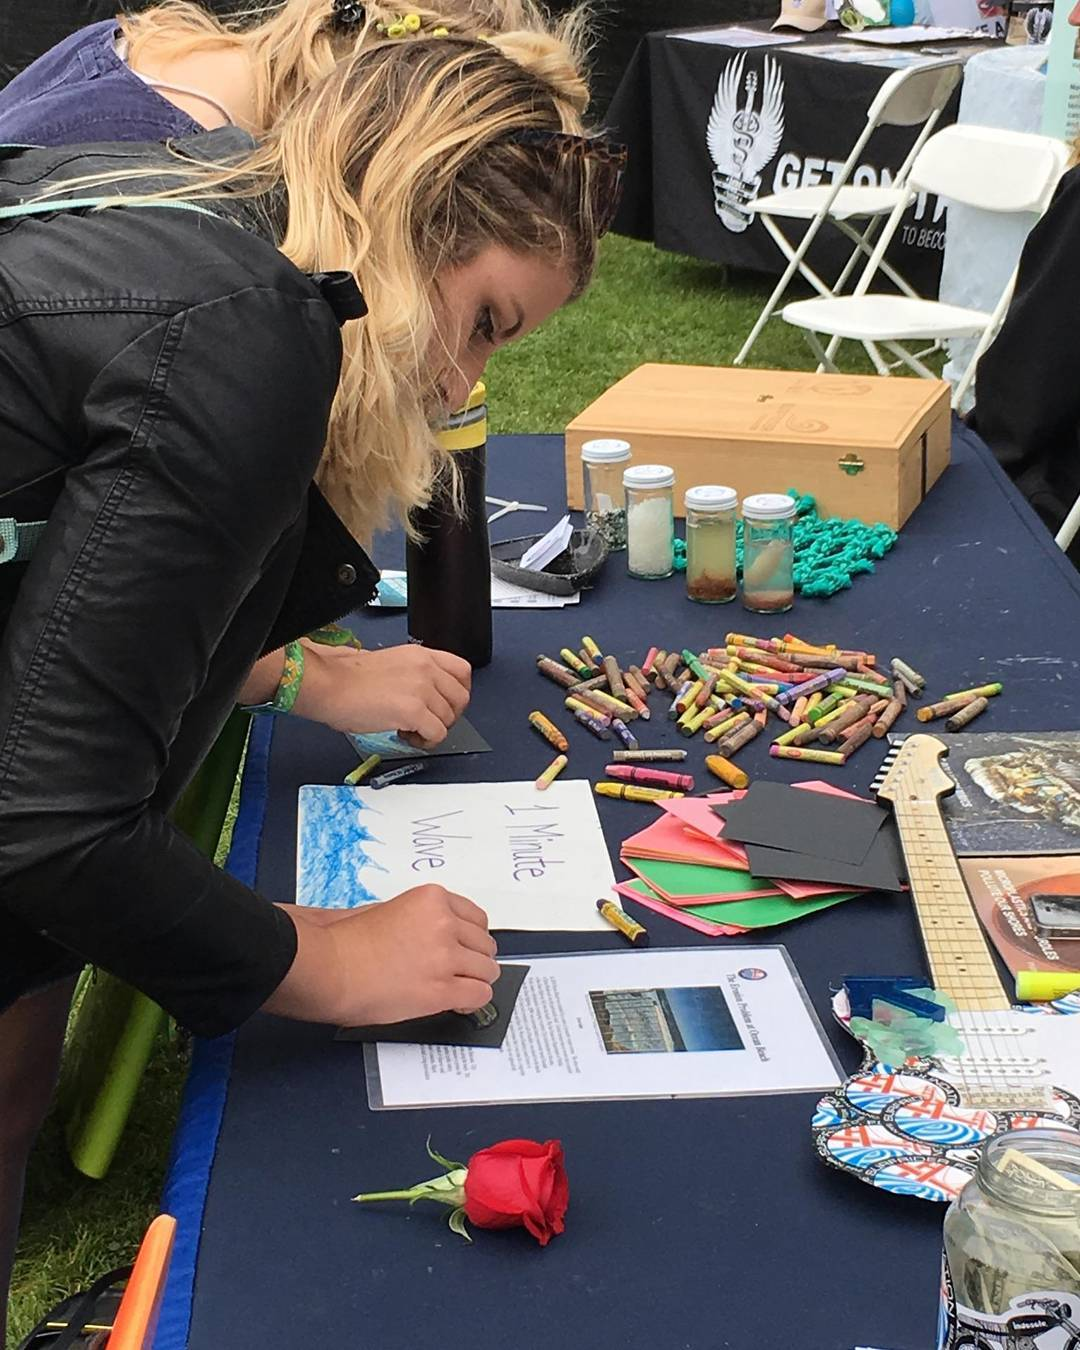 #osl16 Day 2! Come draw a #1minutewave and hit up the selfie station! Inspired by @abelarts and @stwcoalition! #outsidelands #protectandenjoy #surfriderfoundation #surfridersf